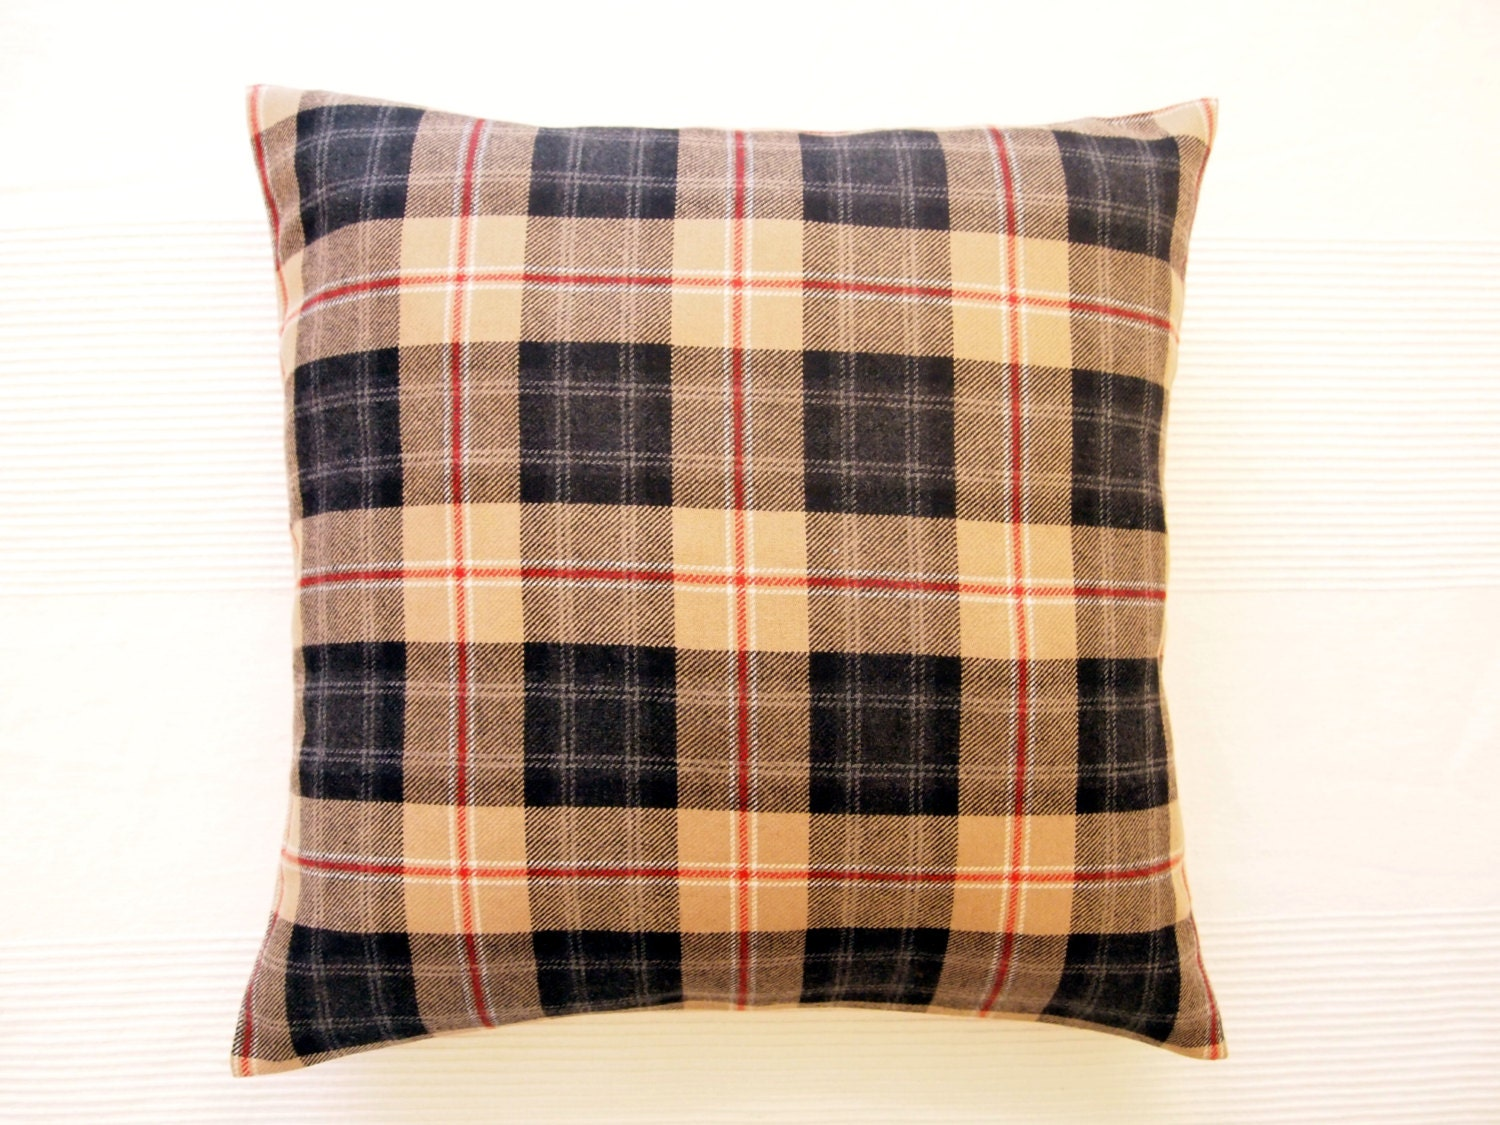 Wool Plaid Pillow Cover Beige Black Red Throw Pillows